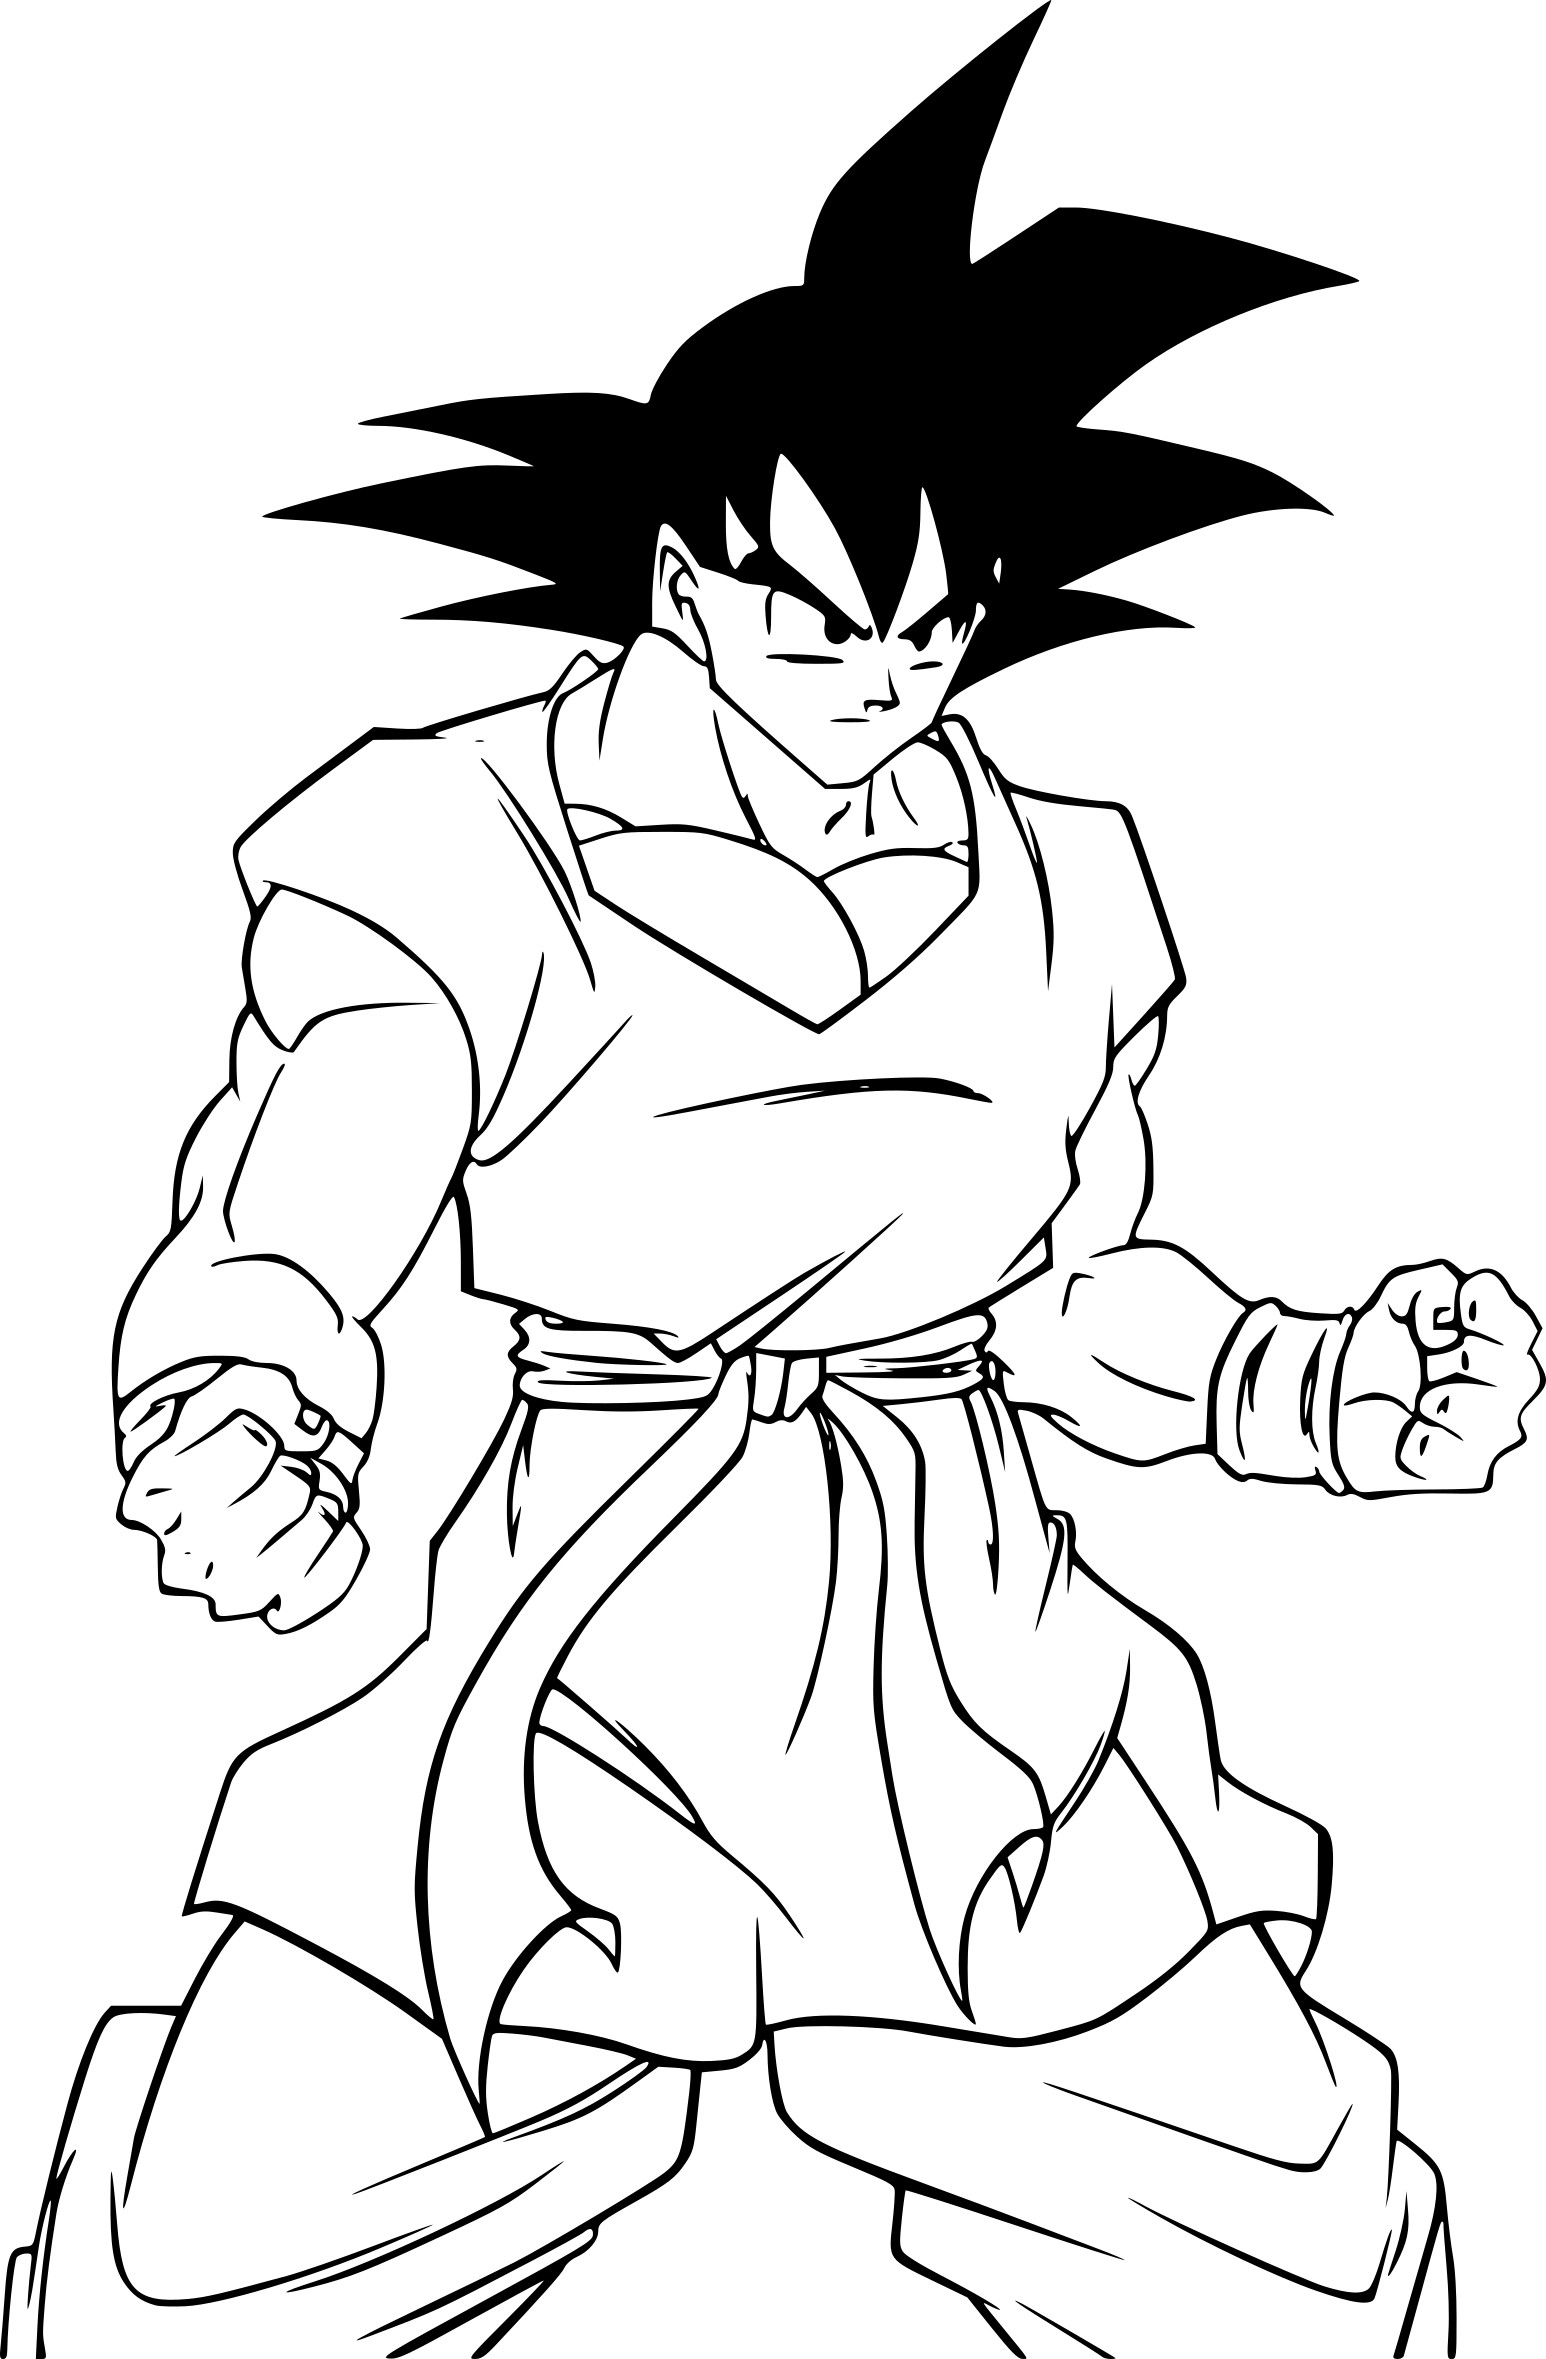 Coloriage son goku dragon ball z imprimer sur coloriages info - Dessin de dragon ball super ...